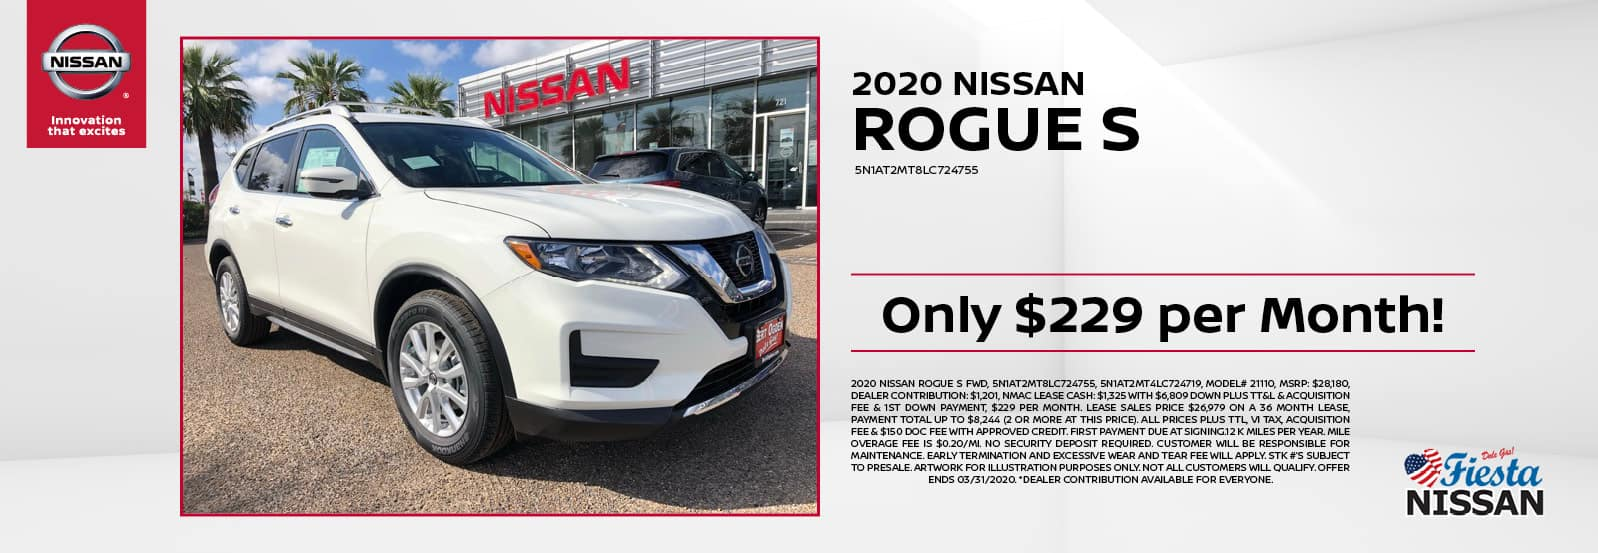 2020 Nissan Rogue S at Fiesta Nissan in Edinburg, TX